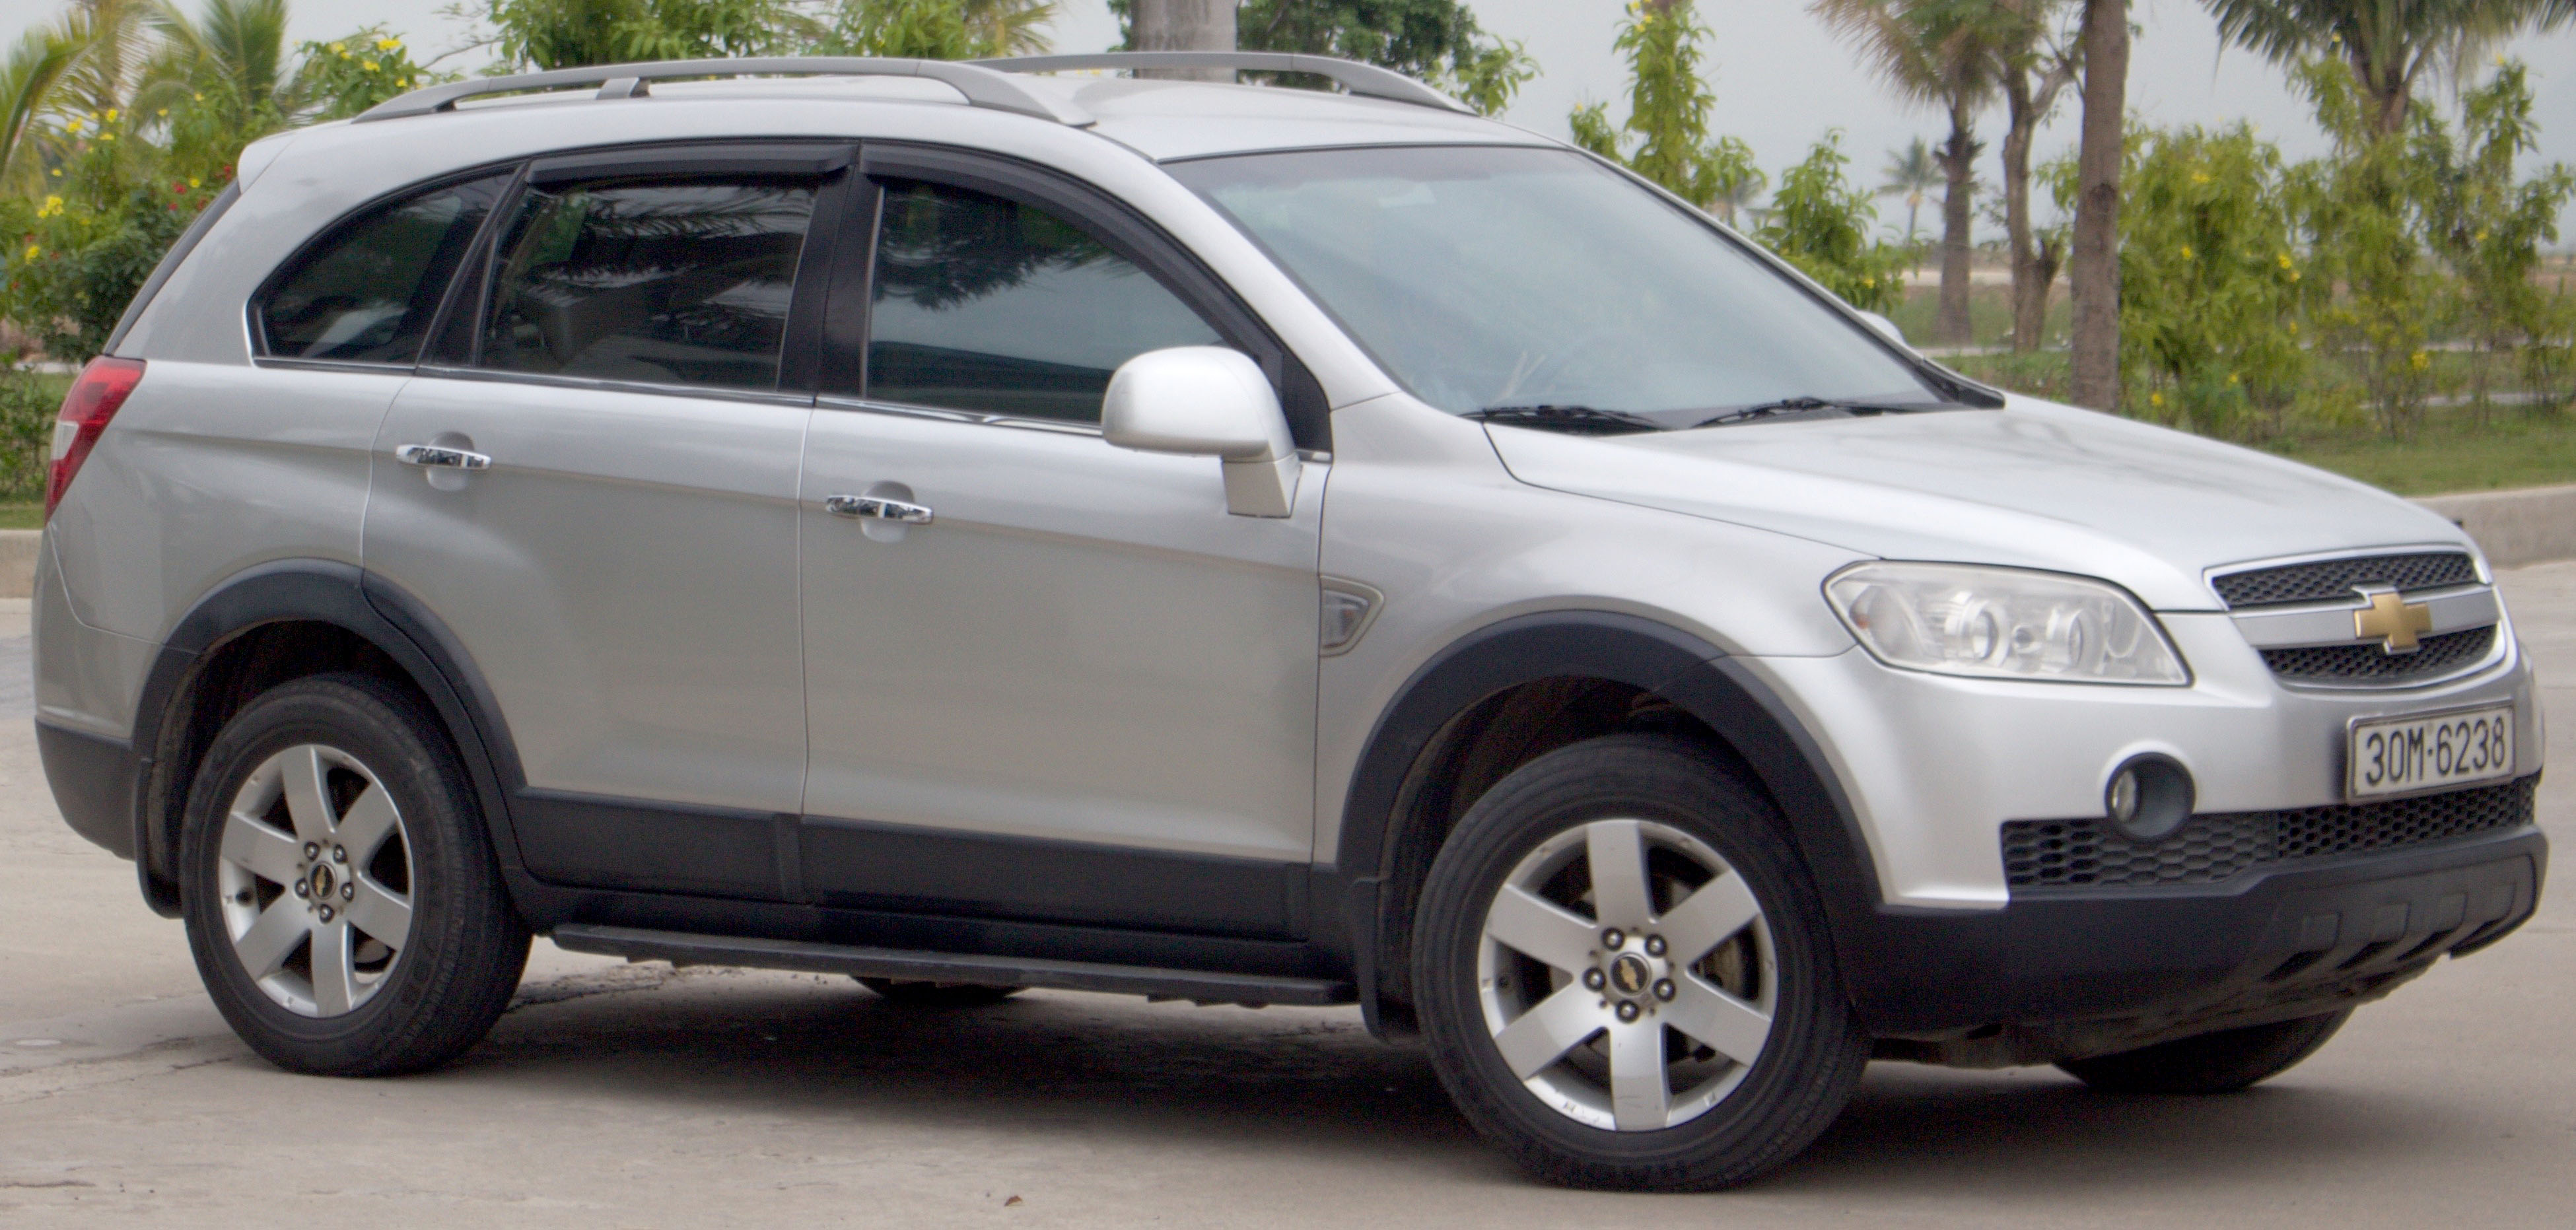 chevrolet captiva wikiwand. Black Bedroom Furniture Sets. Home Design Ideas